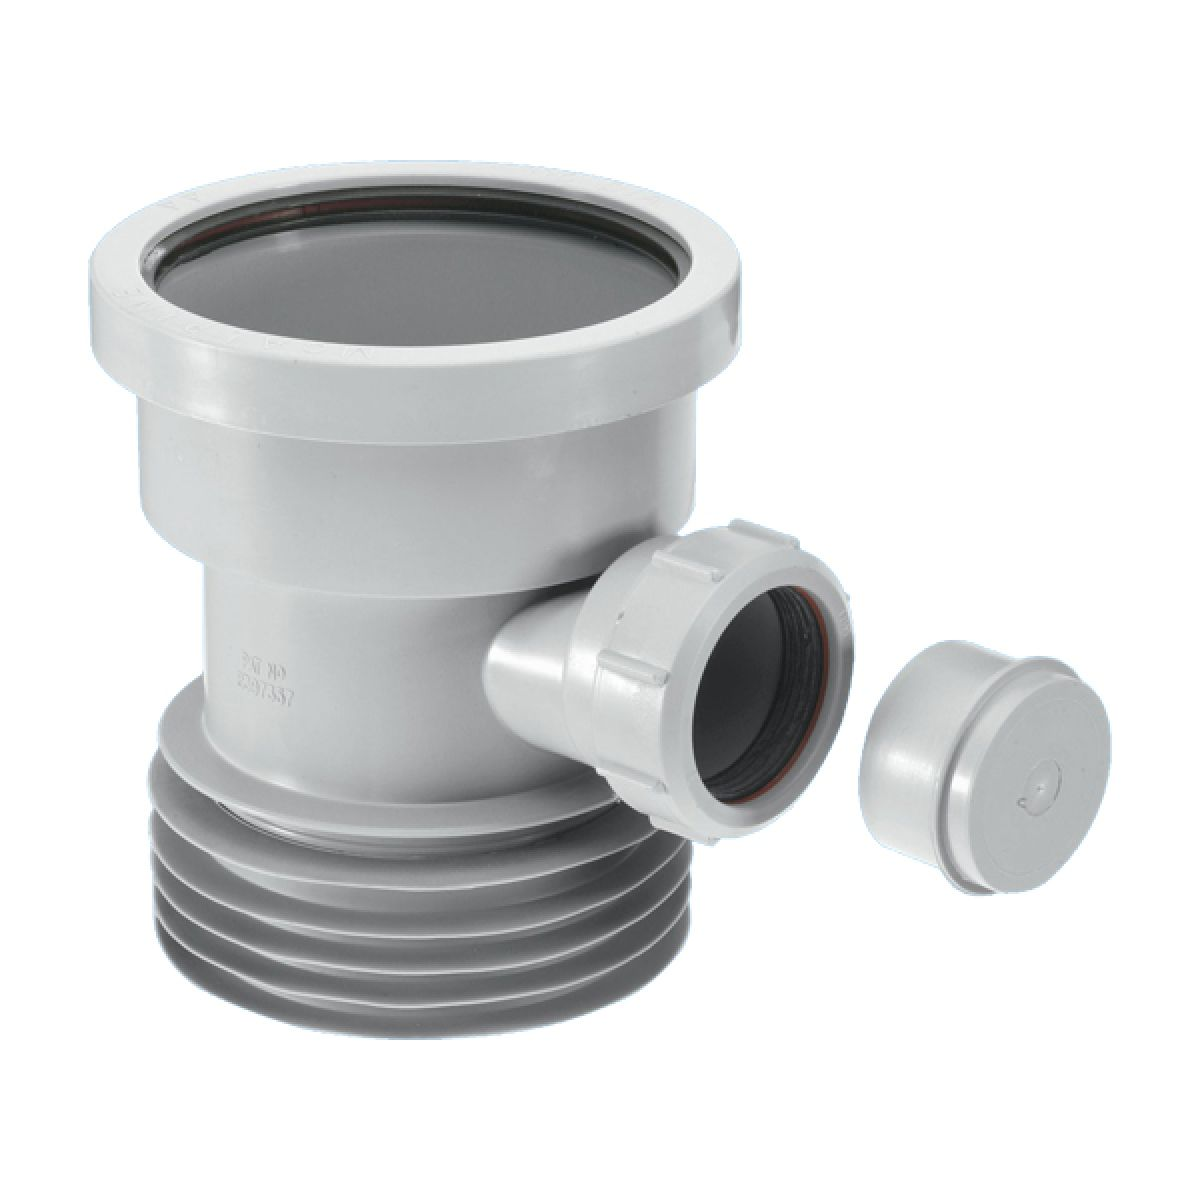 McAlpine DC1-GR-BO Drain Connector with Boss